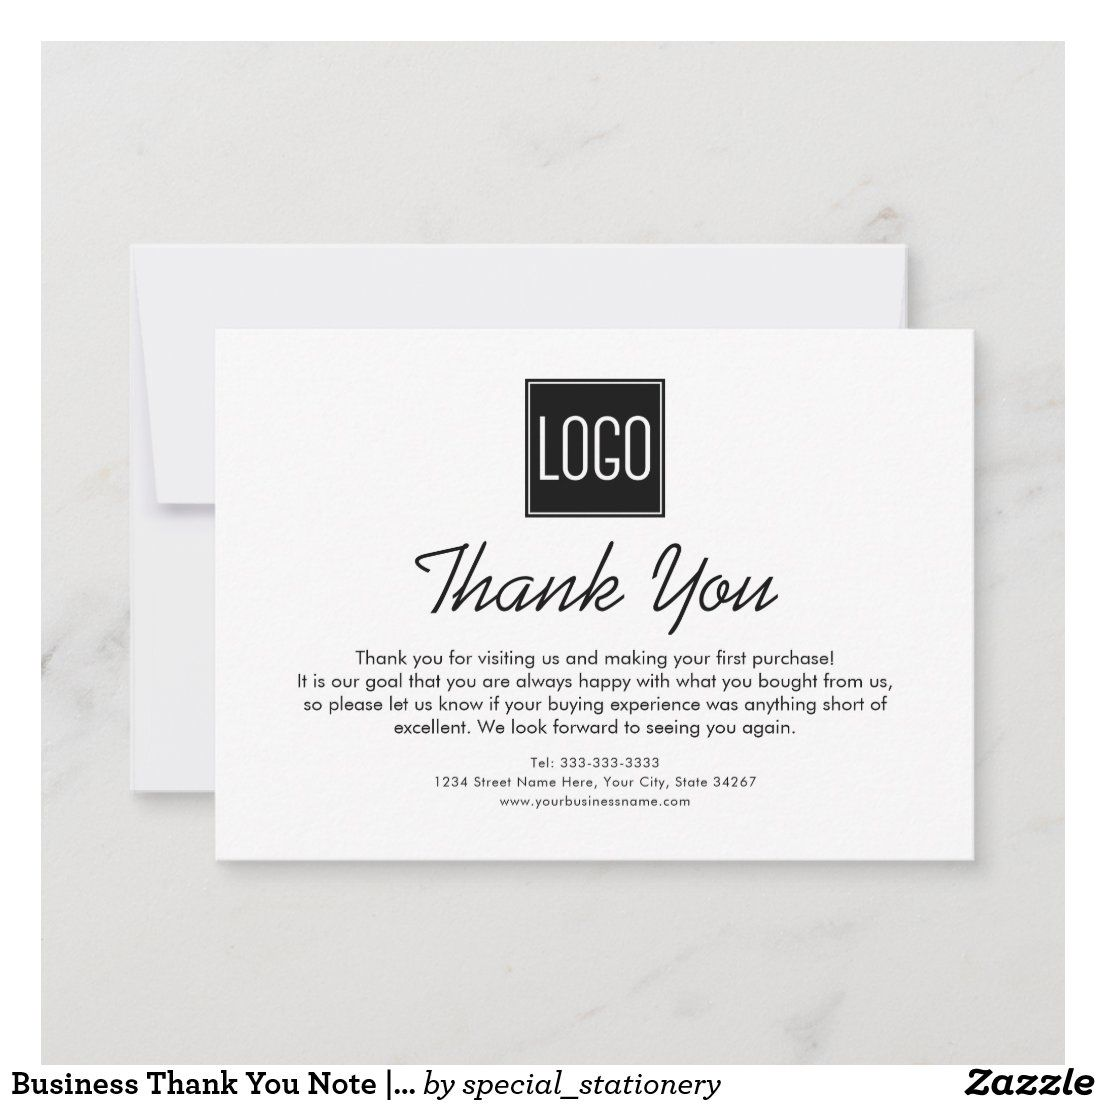 Business Thank You Note Your Logo Zazzle Com In 2021 Business Thank You Notes Thank You Notes Business Thank You